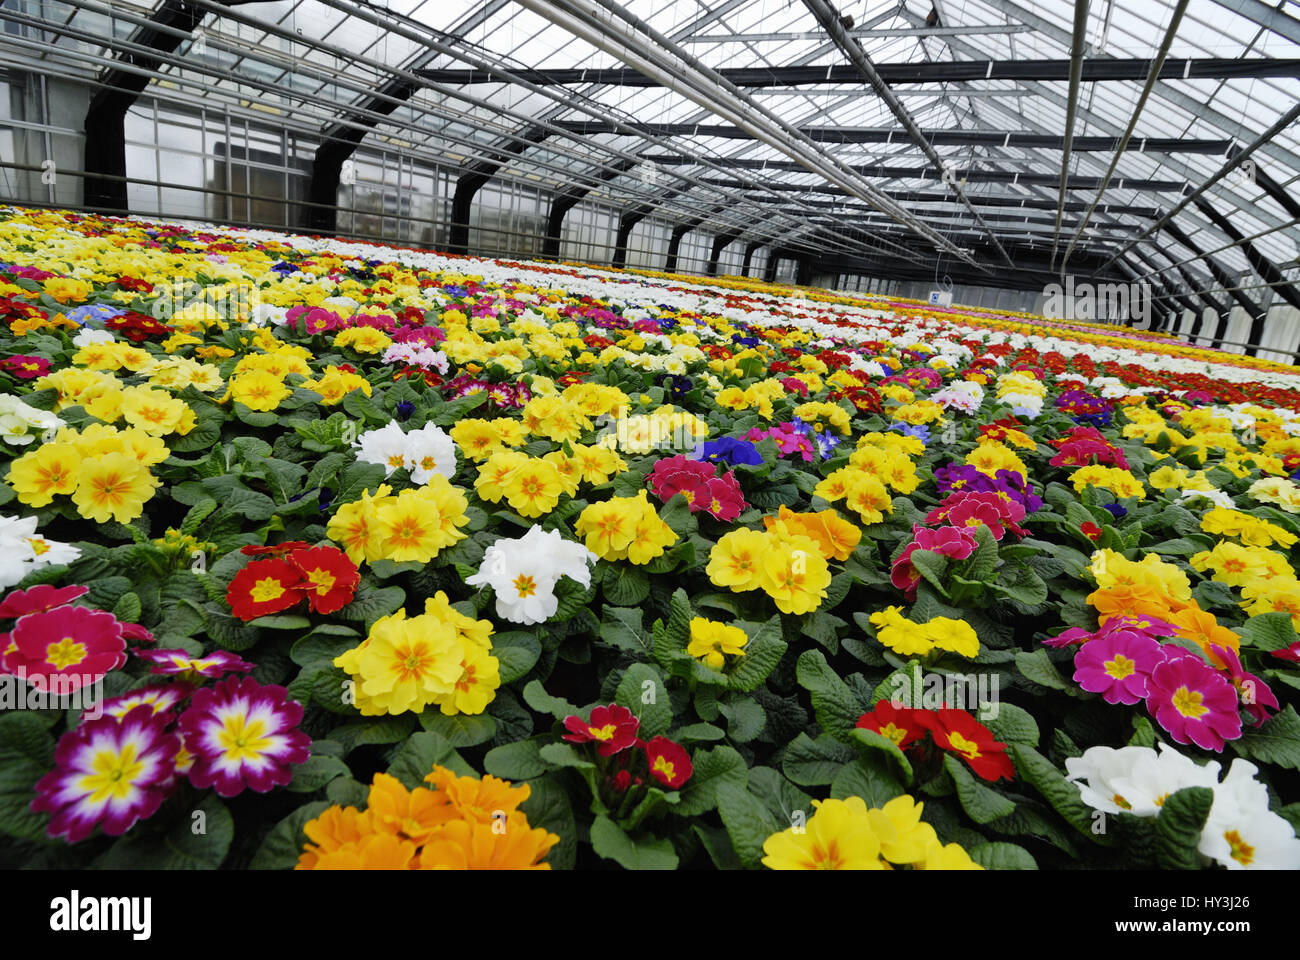 Coloured primroses in a greenhouse, Bunte Primeln in einem Gewächshaus - Stock Image